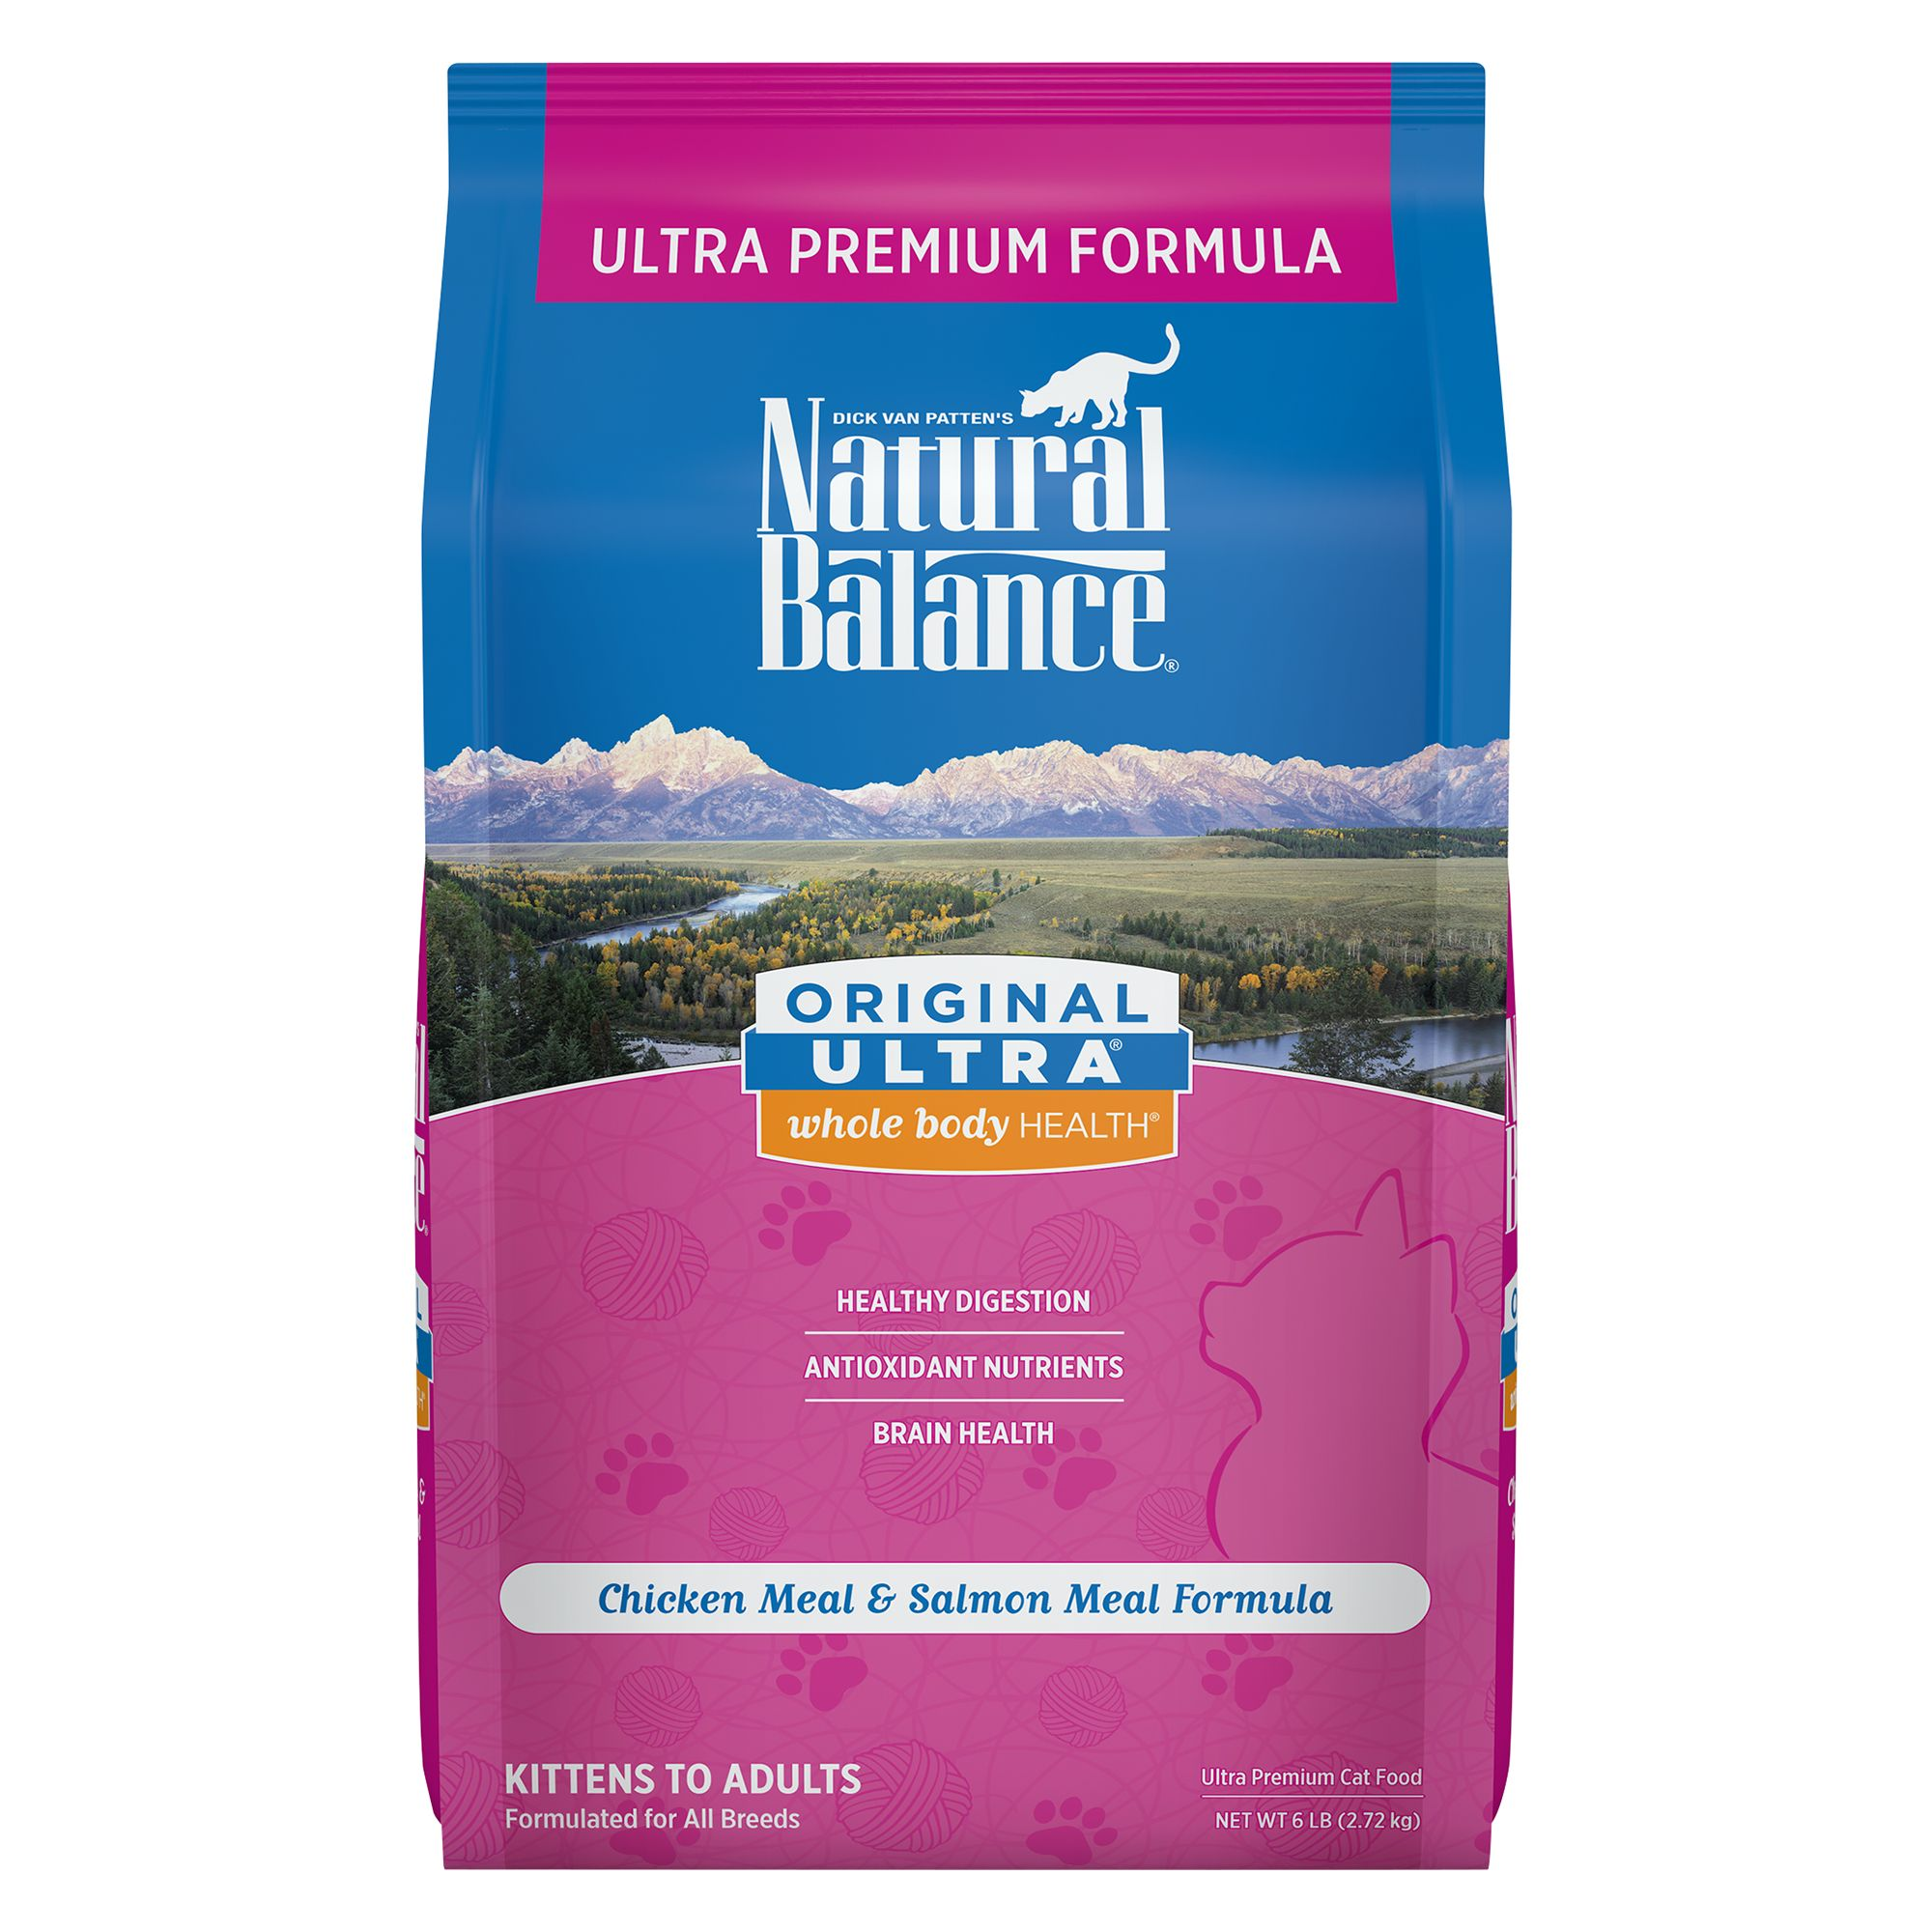 Natural Balance Original Ultra Whole Body Health Cat Food - Gluten Free, Chicken Meal and Salmon Meal size: 6 Lb, Chicken and Salmon, Kibble, Adult 5235445